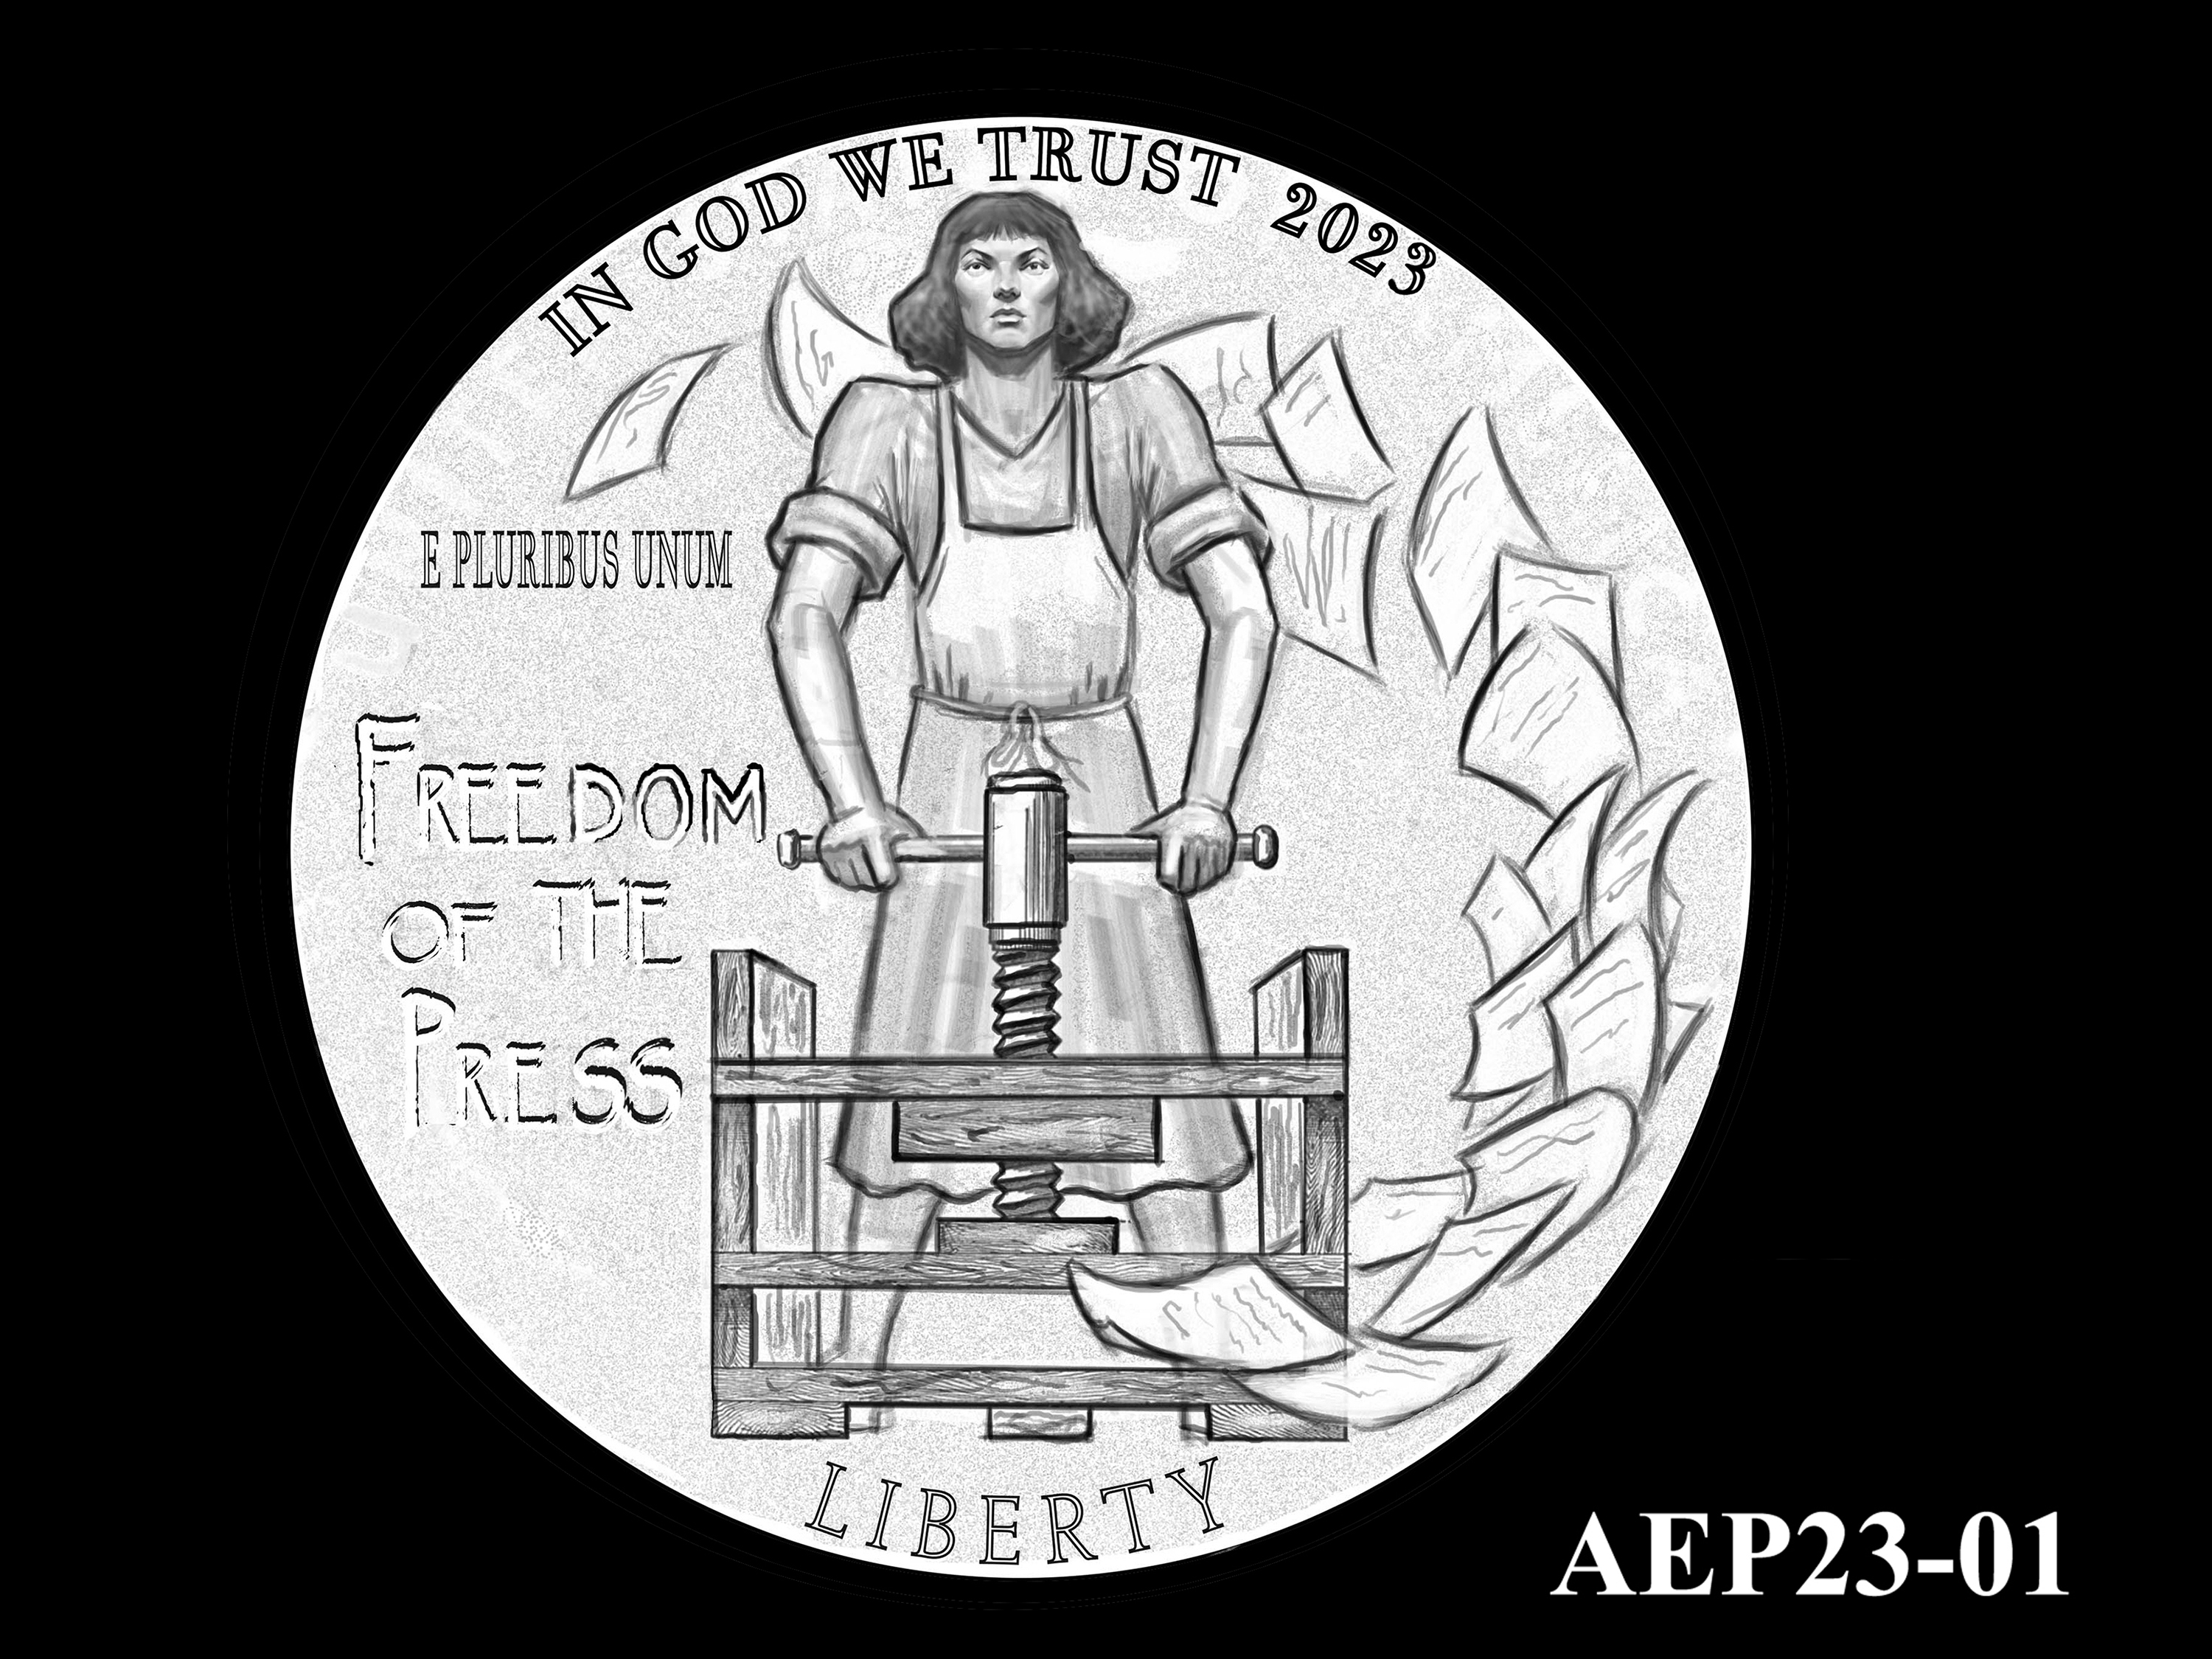 AEP23-01 -- 2021 American Eagle Platinum Proof Program